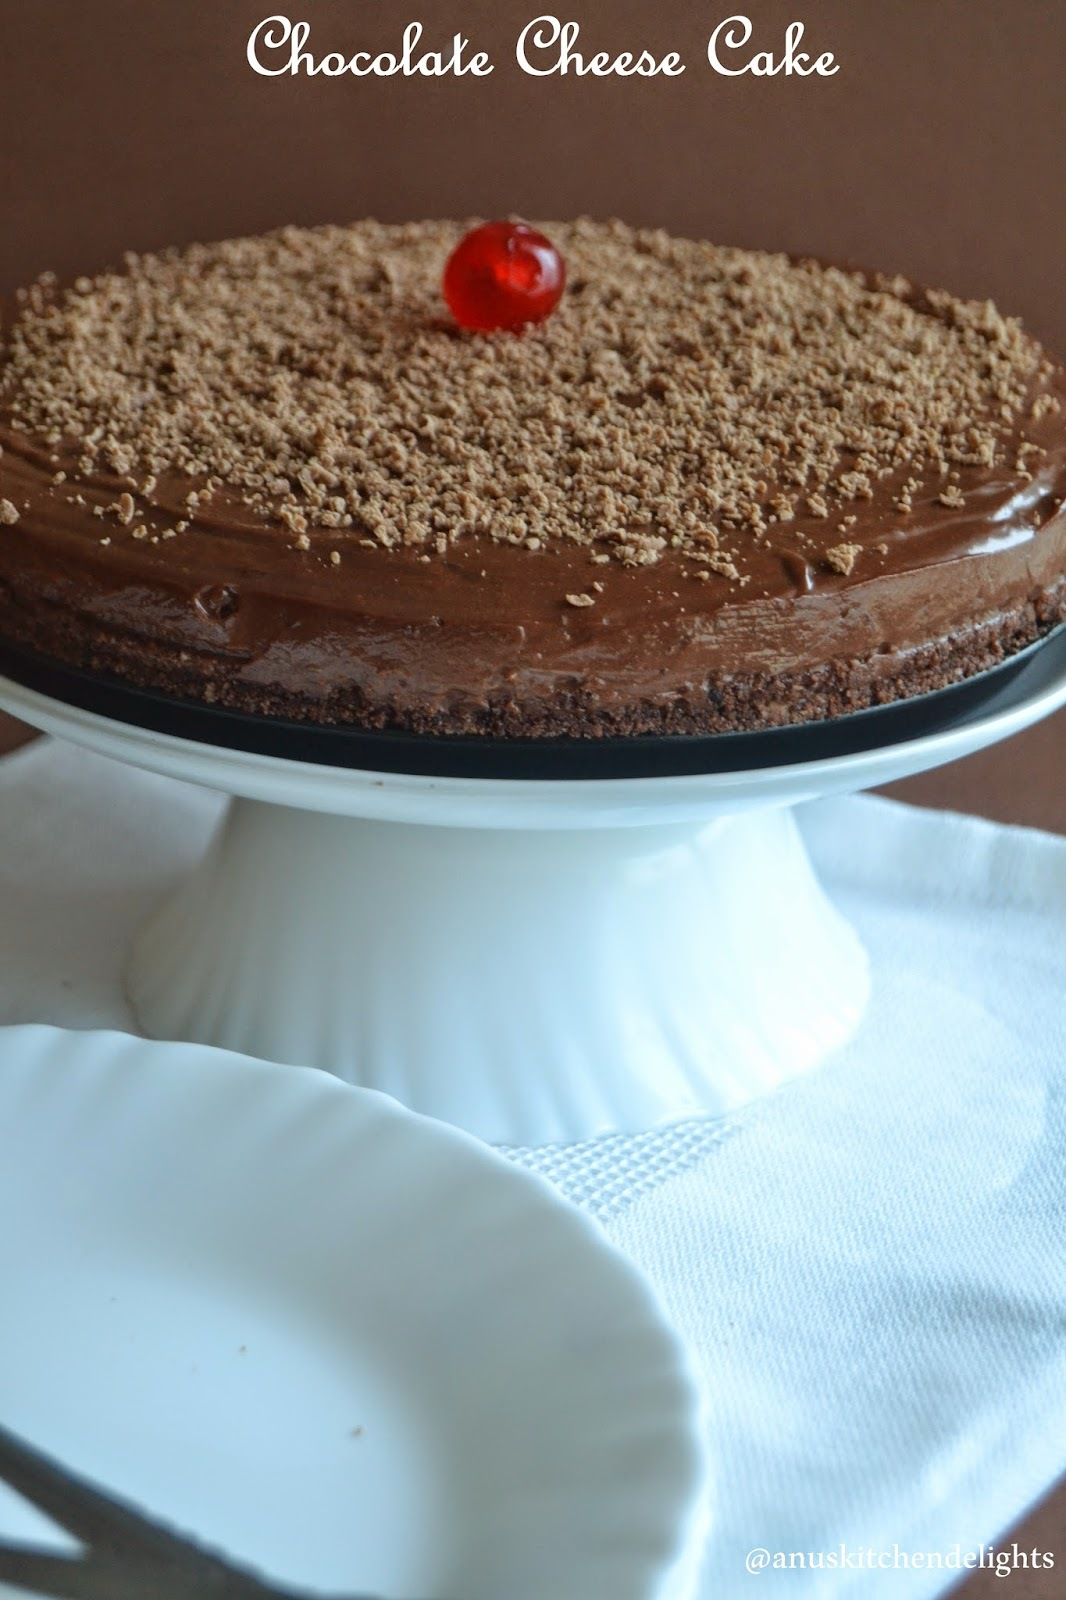 Chocolate Cheese Cake Recipe - Eggless & No Bake - Guest Post @ Fullscoops